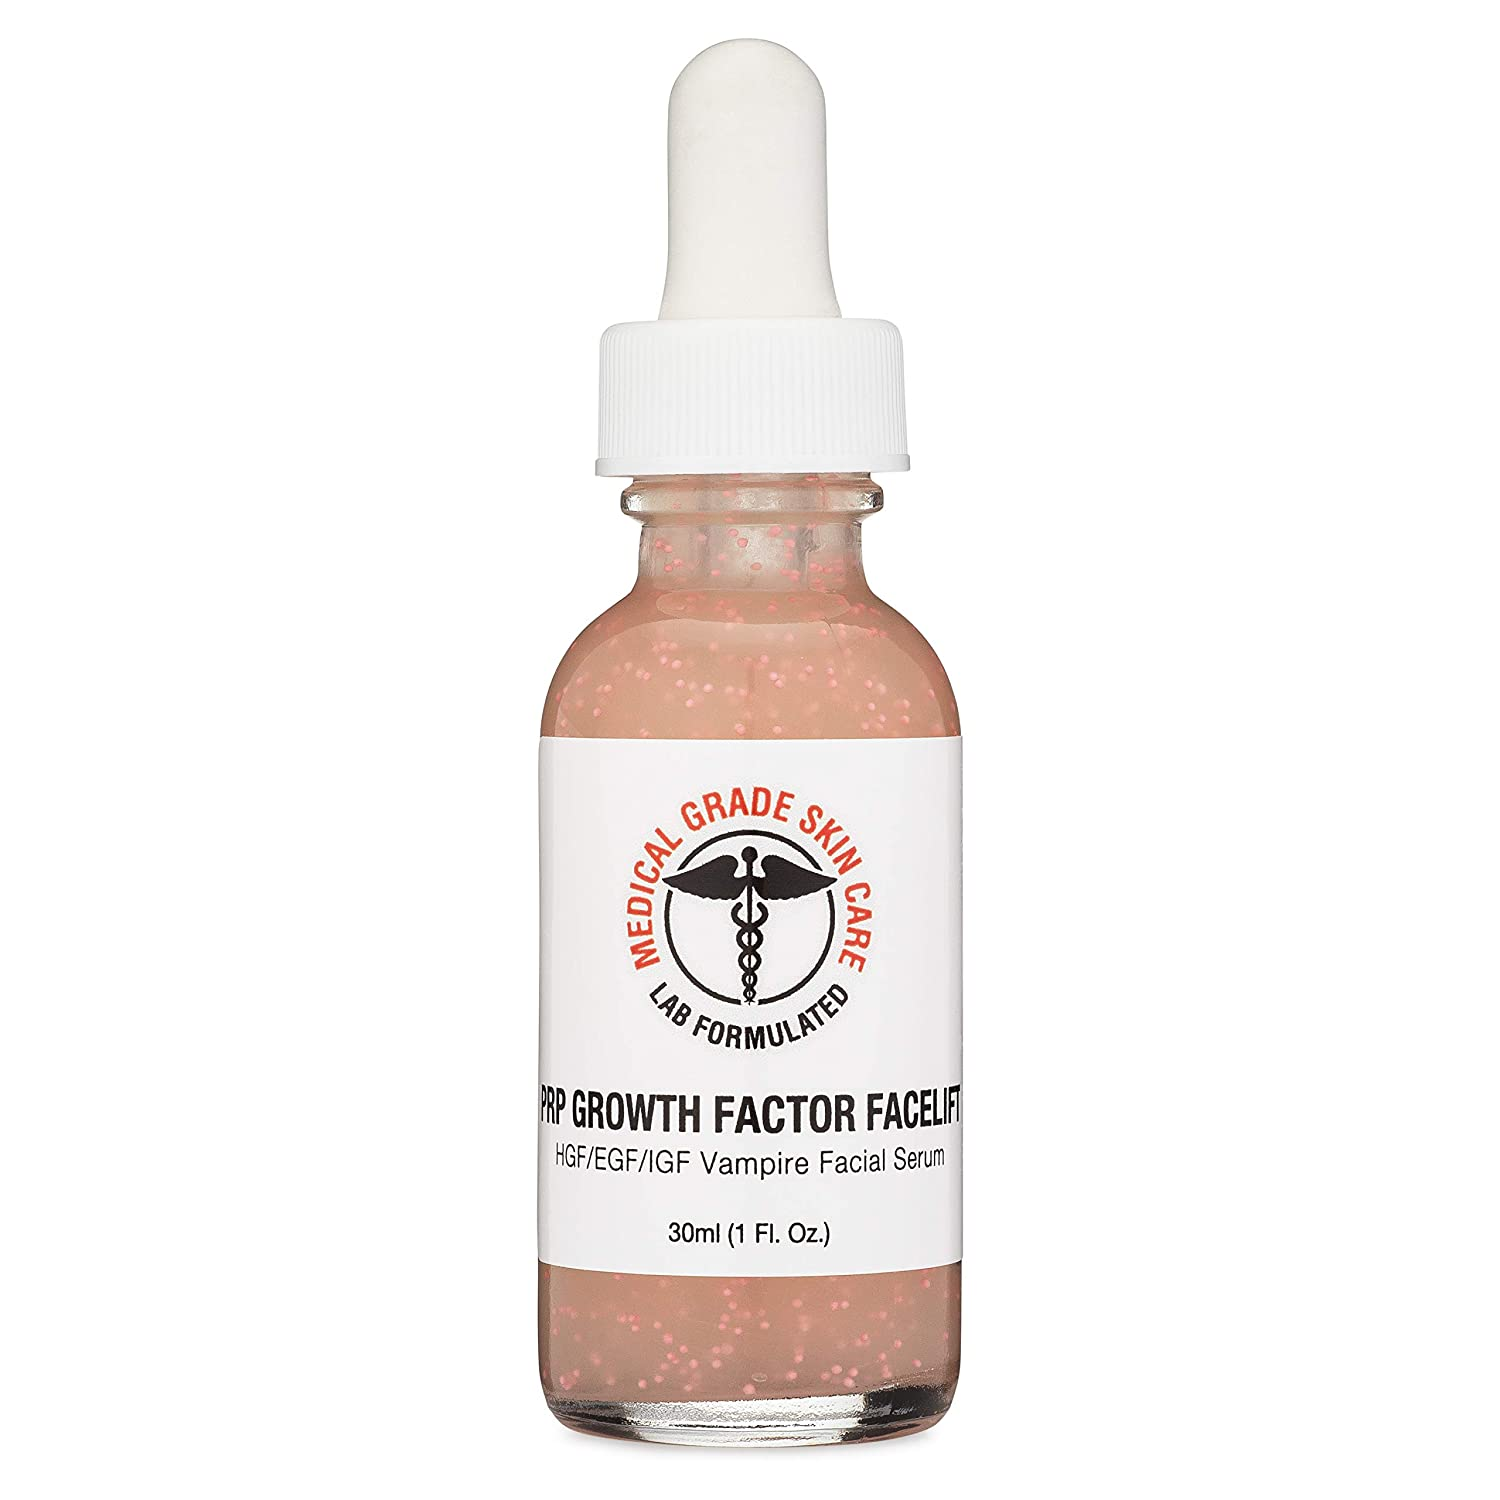 EGF PRP Serum by Medical Grade Skin Care | Epidermal Growth Factor, HGF, IGF Facial Serum